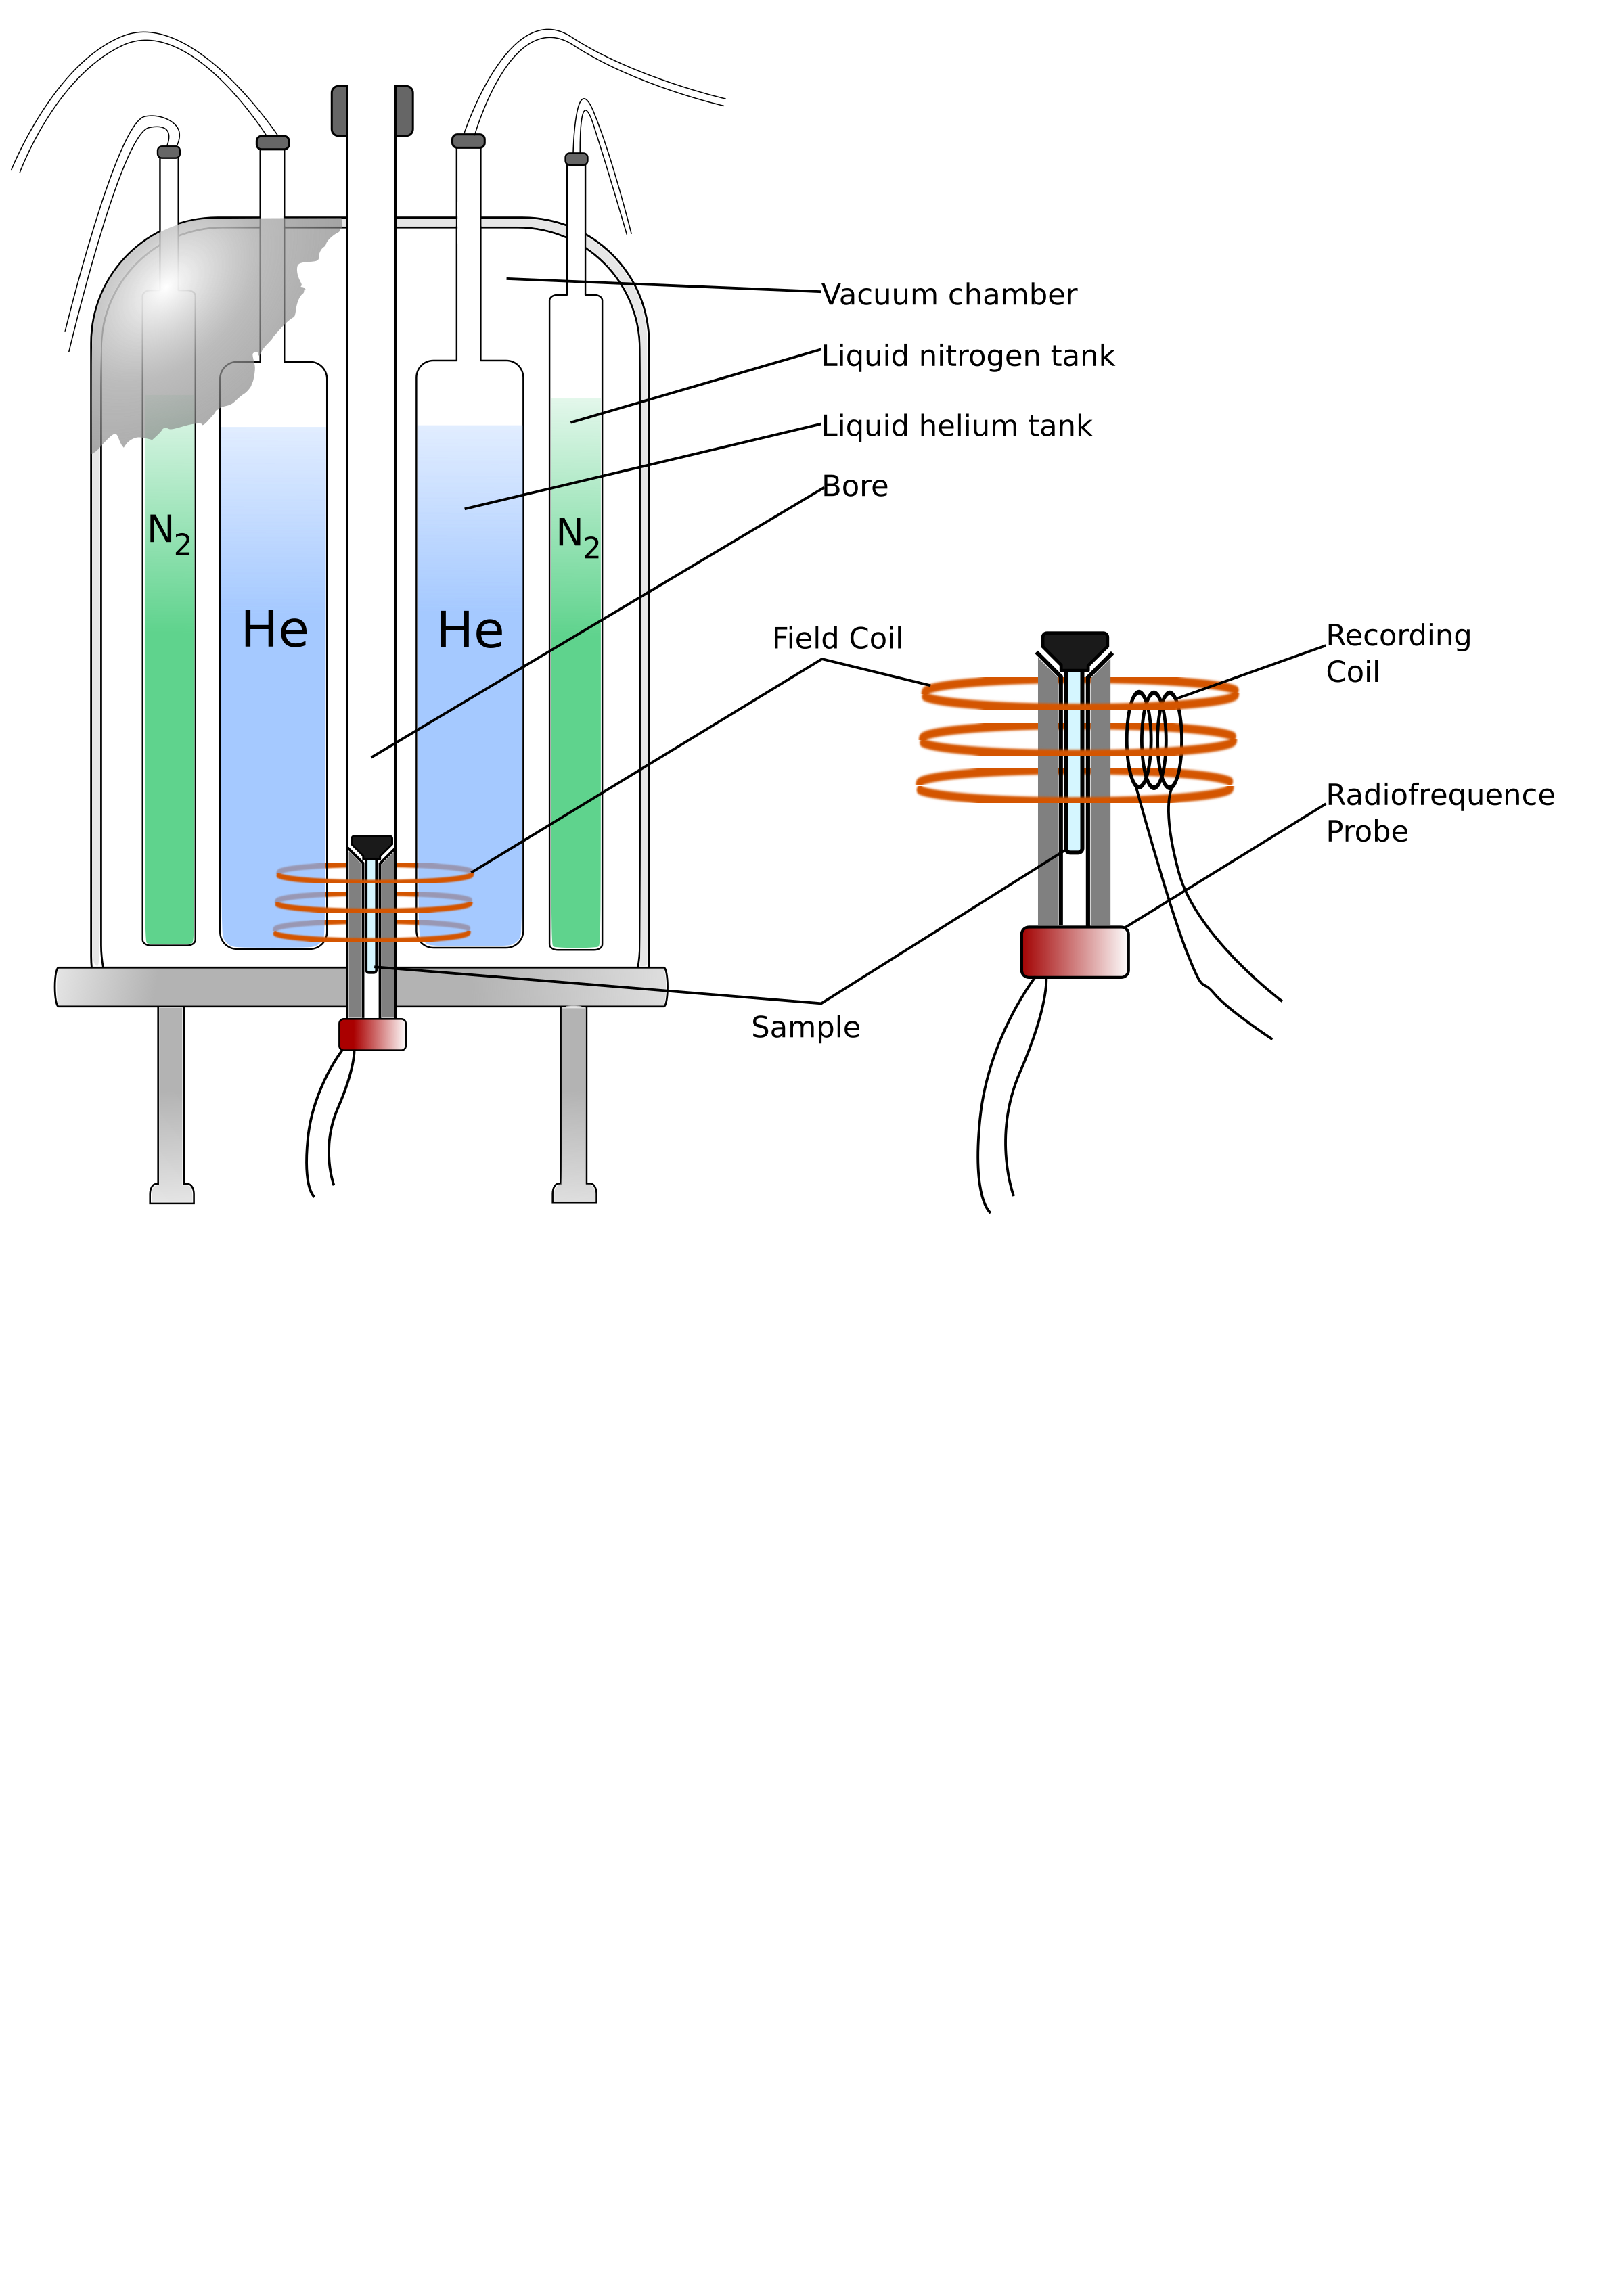 NMR spectrometer scheme english by HcN